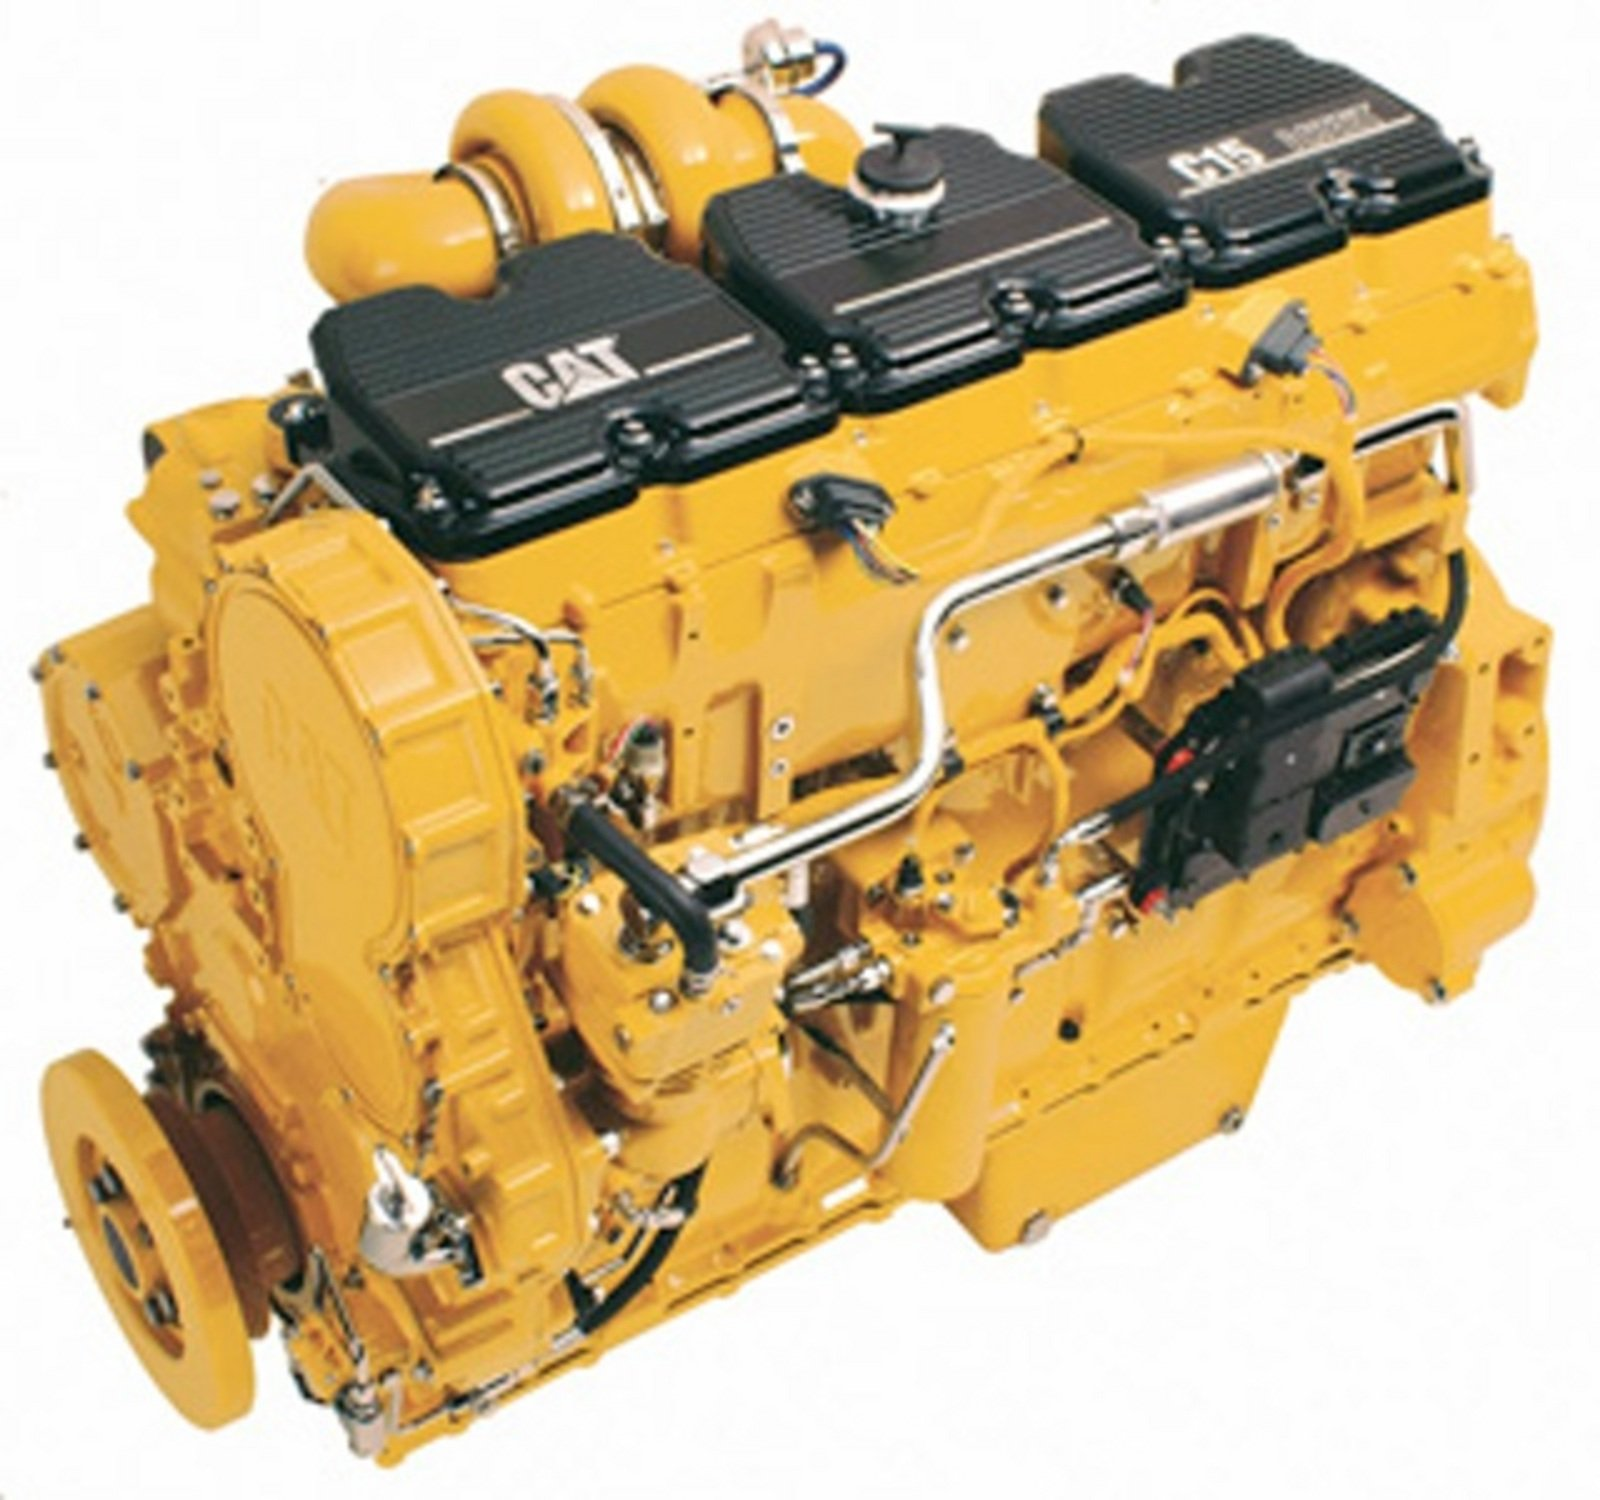 Cat Launched The New 15l C15 Engine News